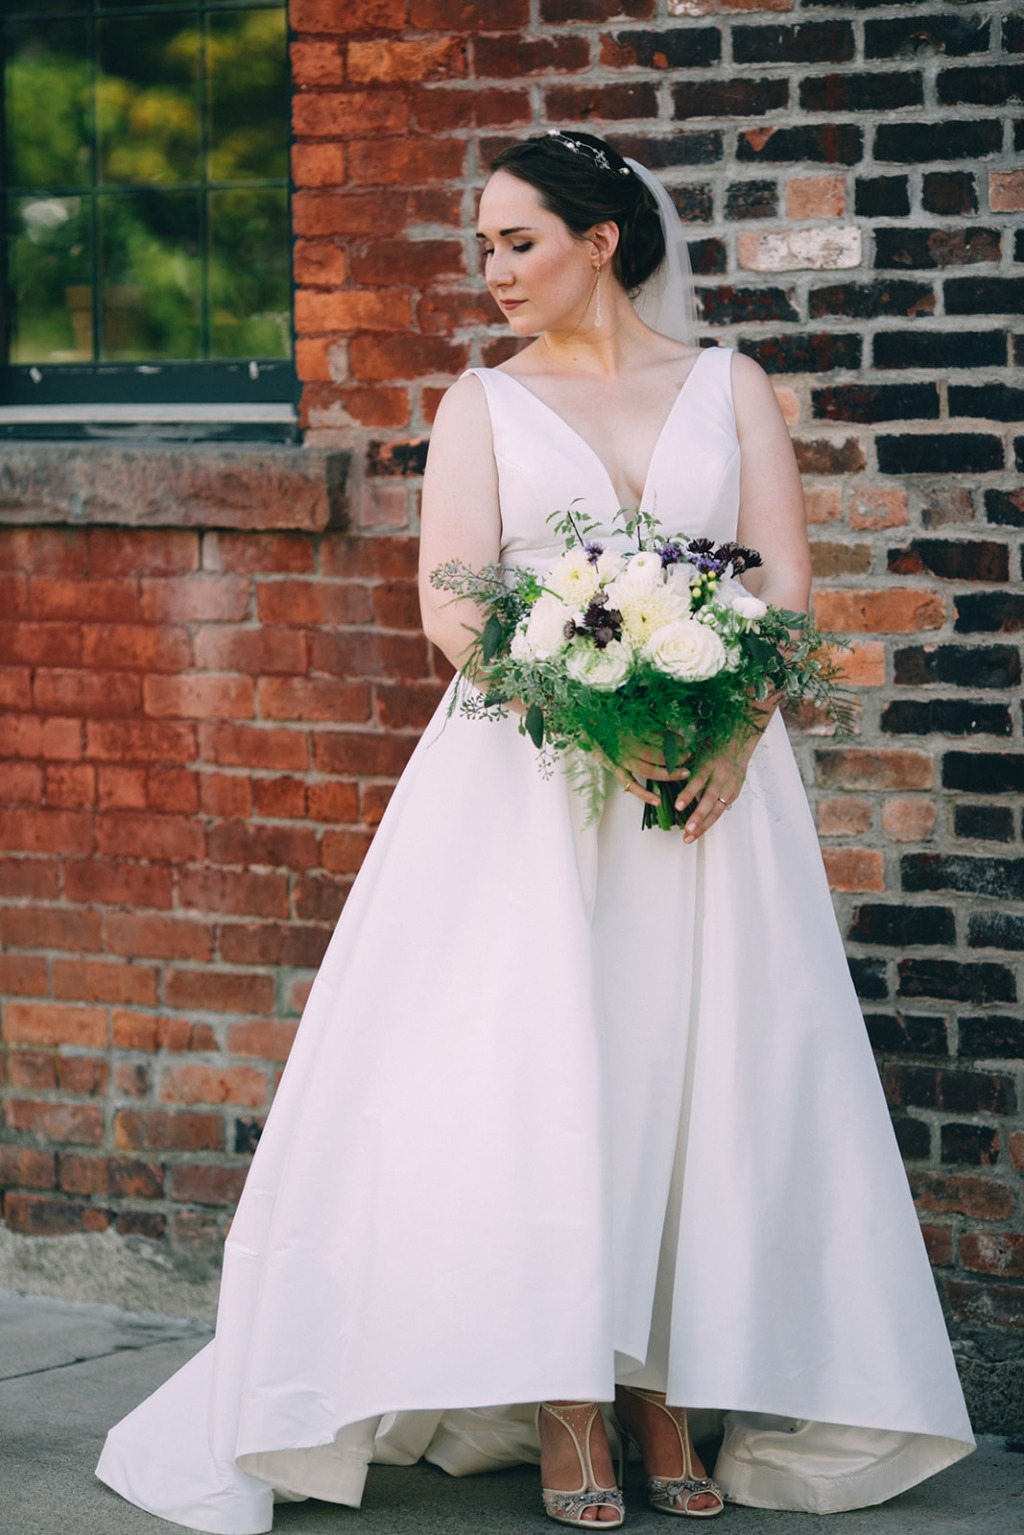 An industrial setting and rustic details set the tone for Erin and Casey's garden-meets-city wedding in upstate New York. Dress: